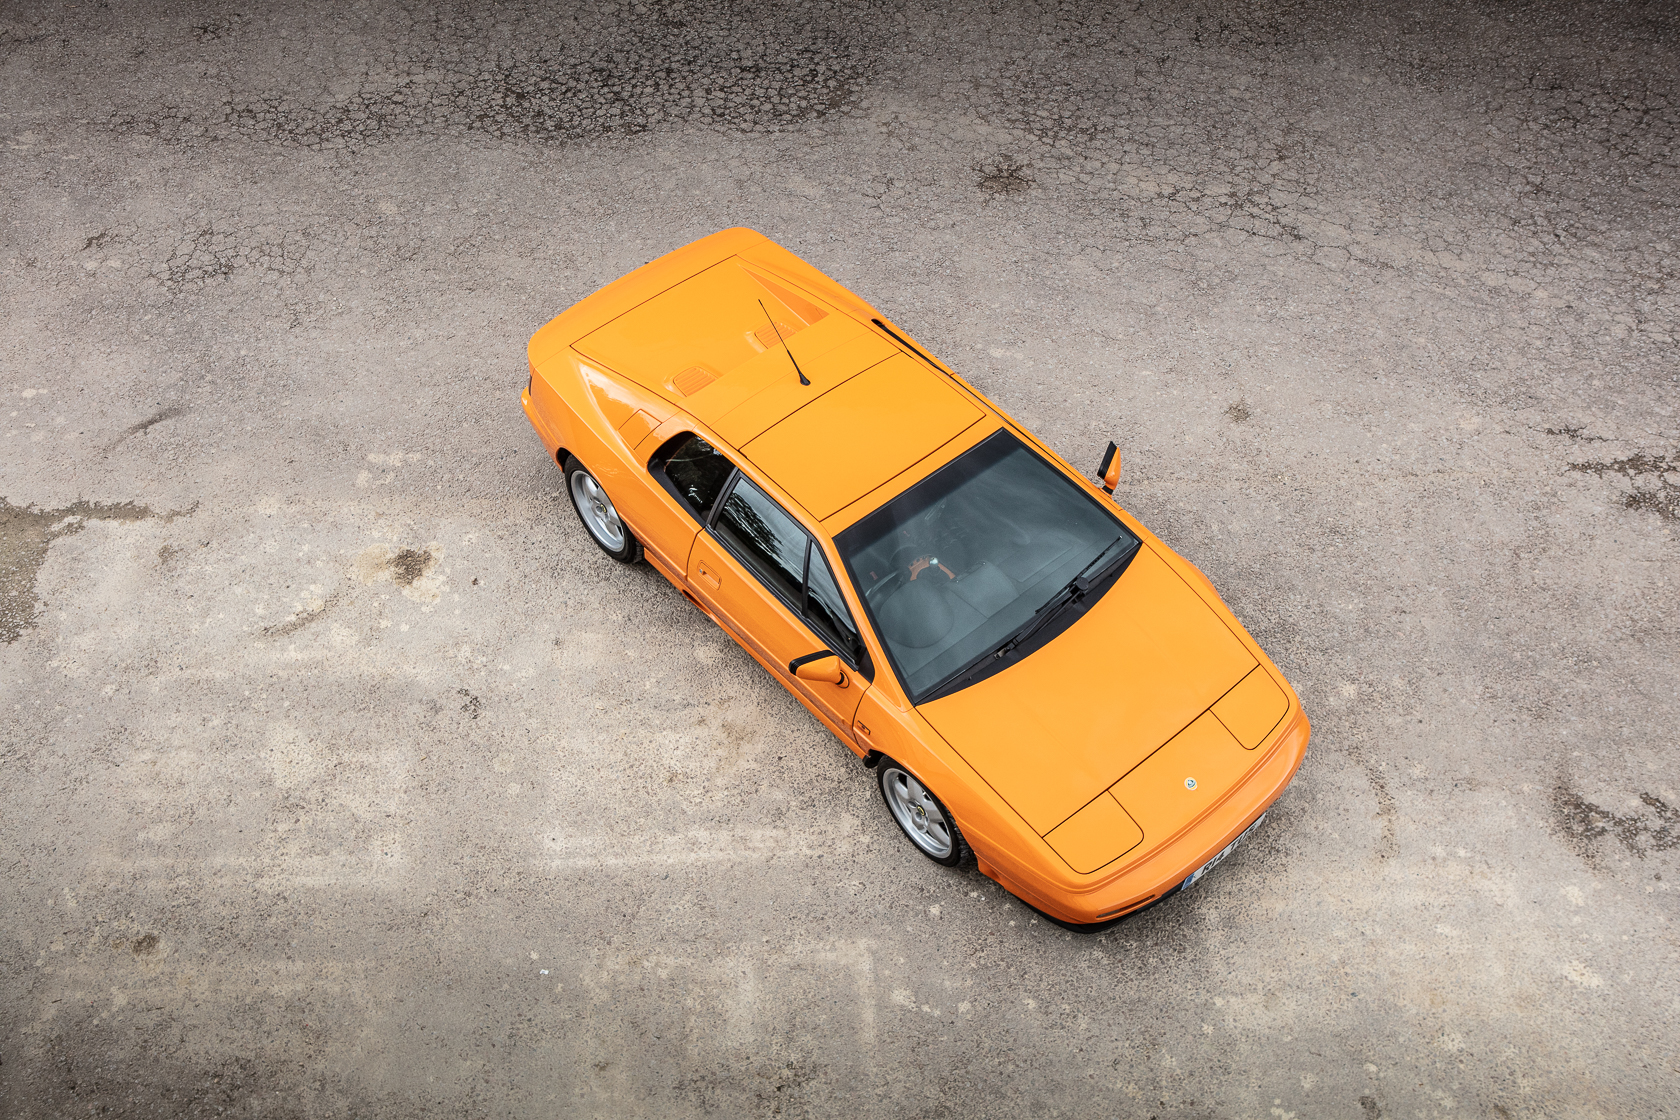 lotus esprit gt3 from above